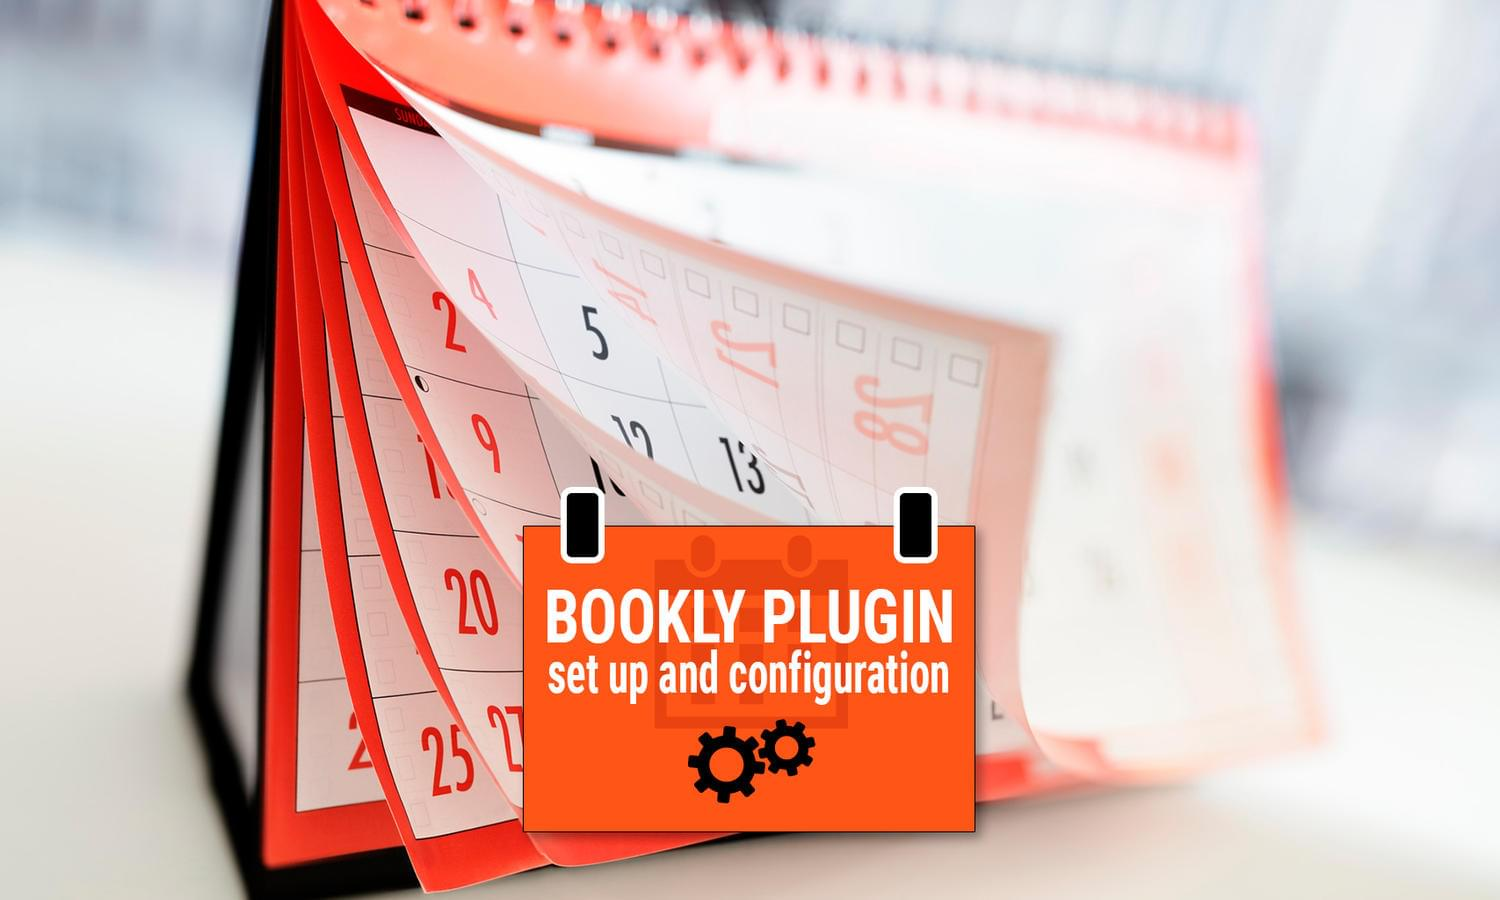 Bookly Plugin Setup and Configuration by madridnyc - 111969